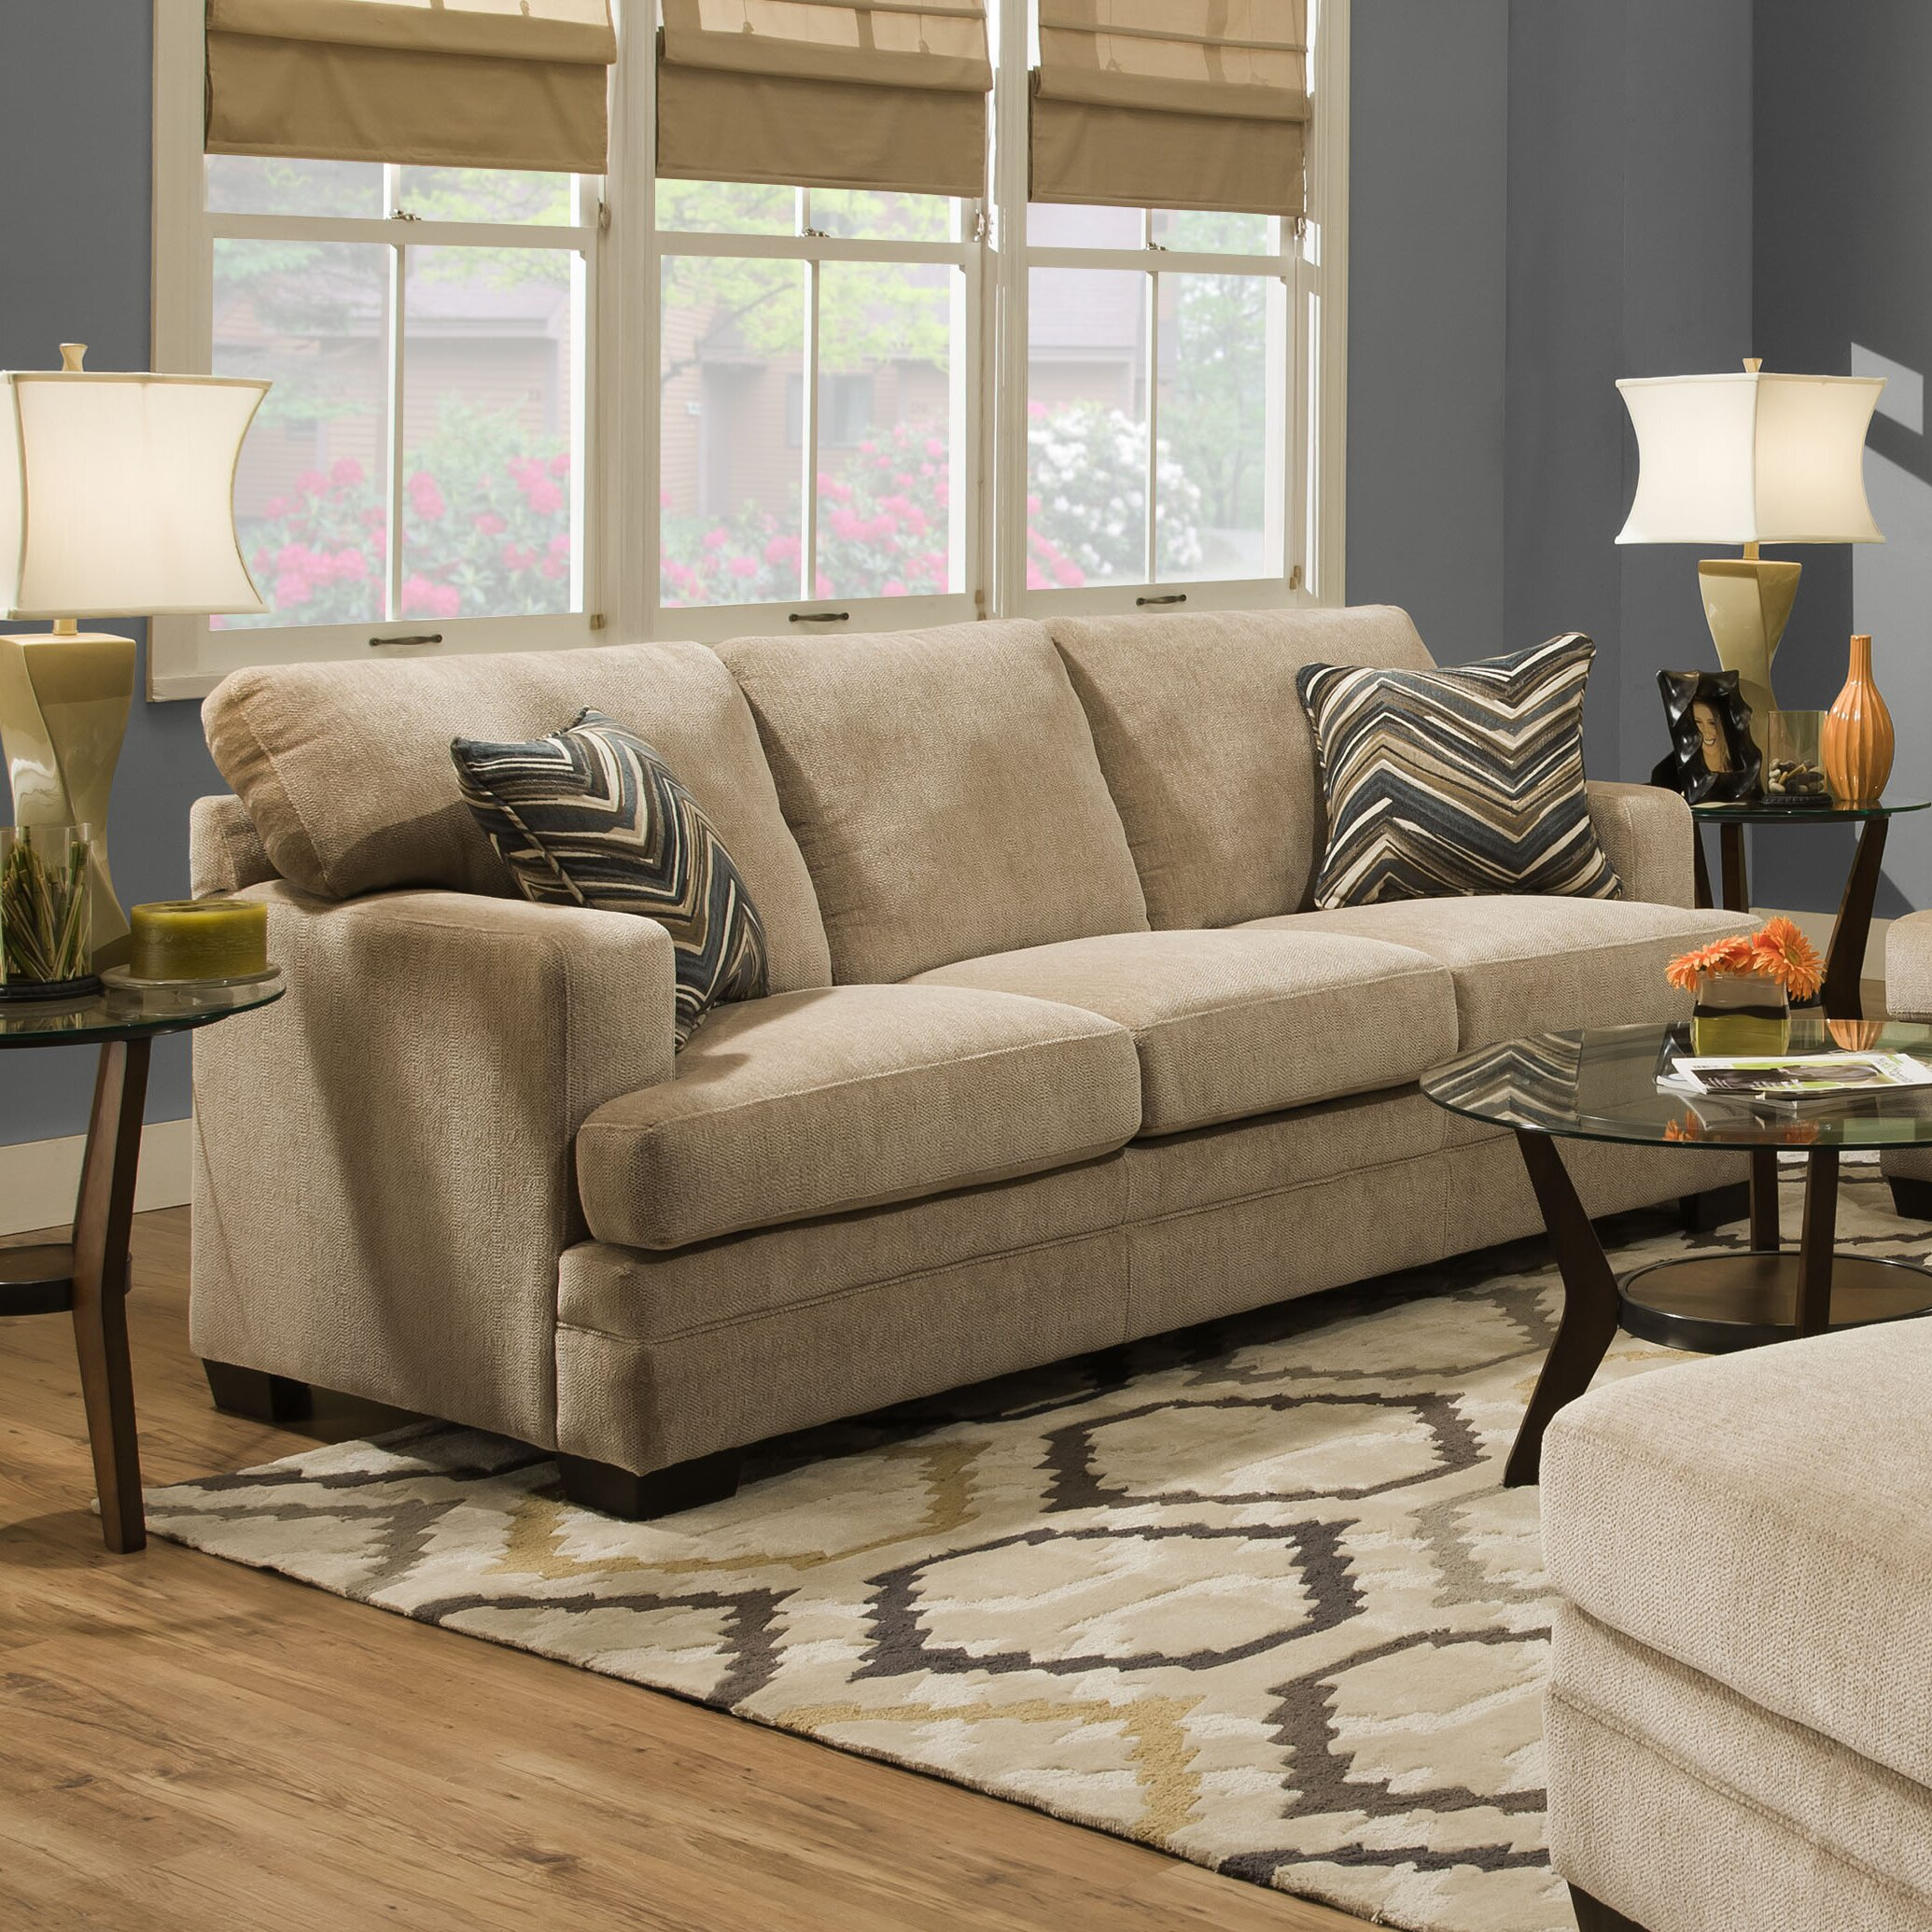 Simmons upholstery sassy barley living room collection for Simmons living room furniture